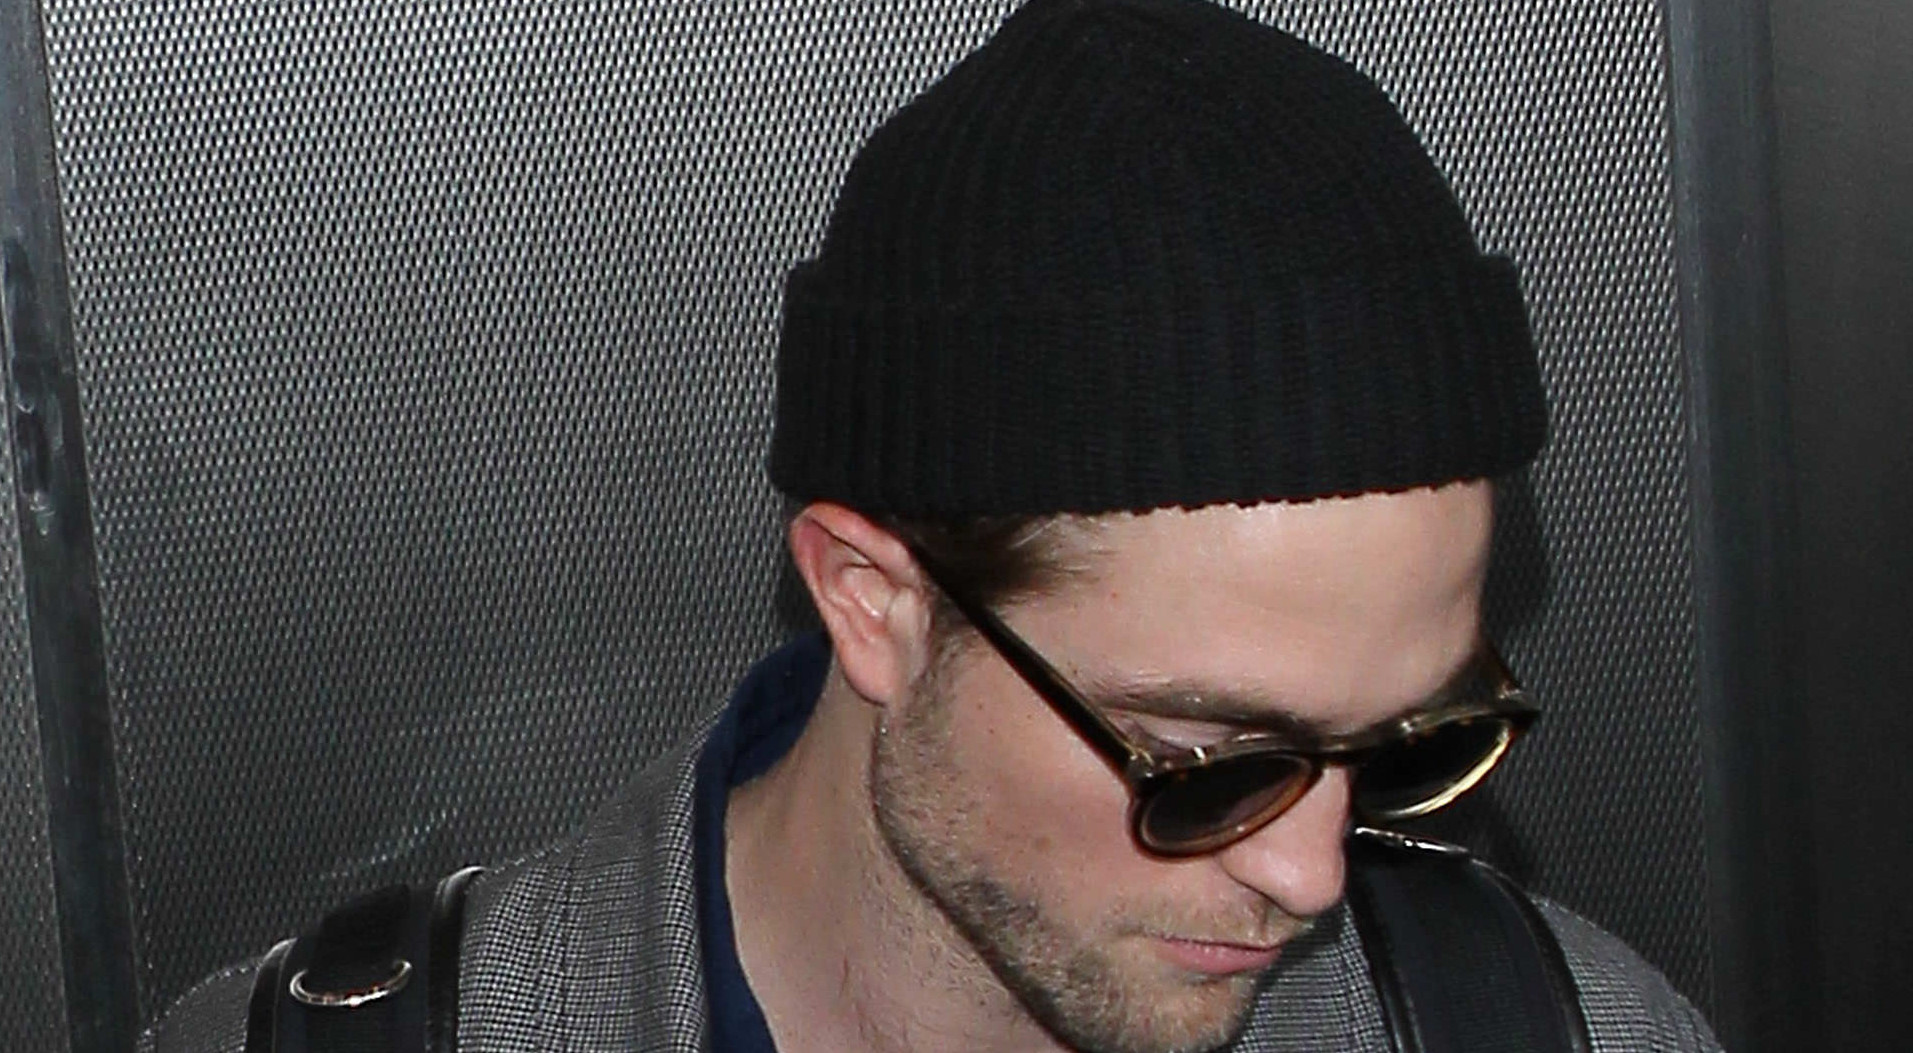 Fotos de Robert no aeroporto de Los Angeles (24/02)